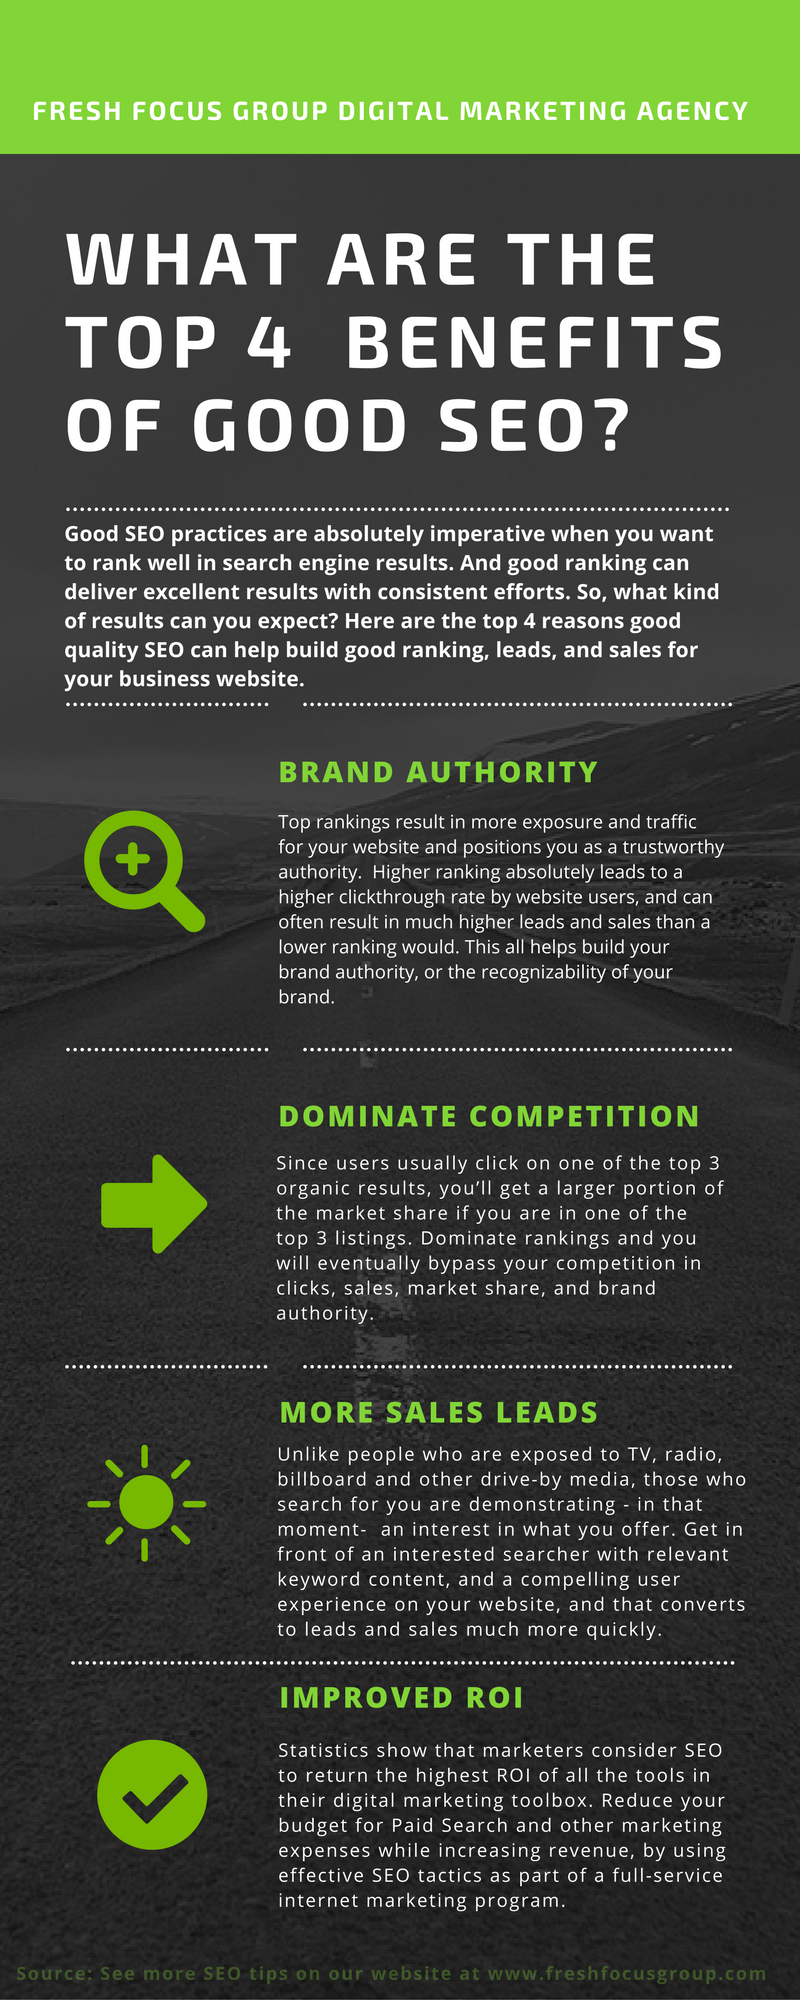 Benefits of good SEO Infographic